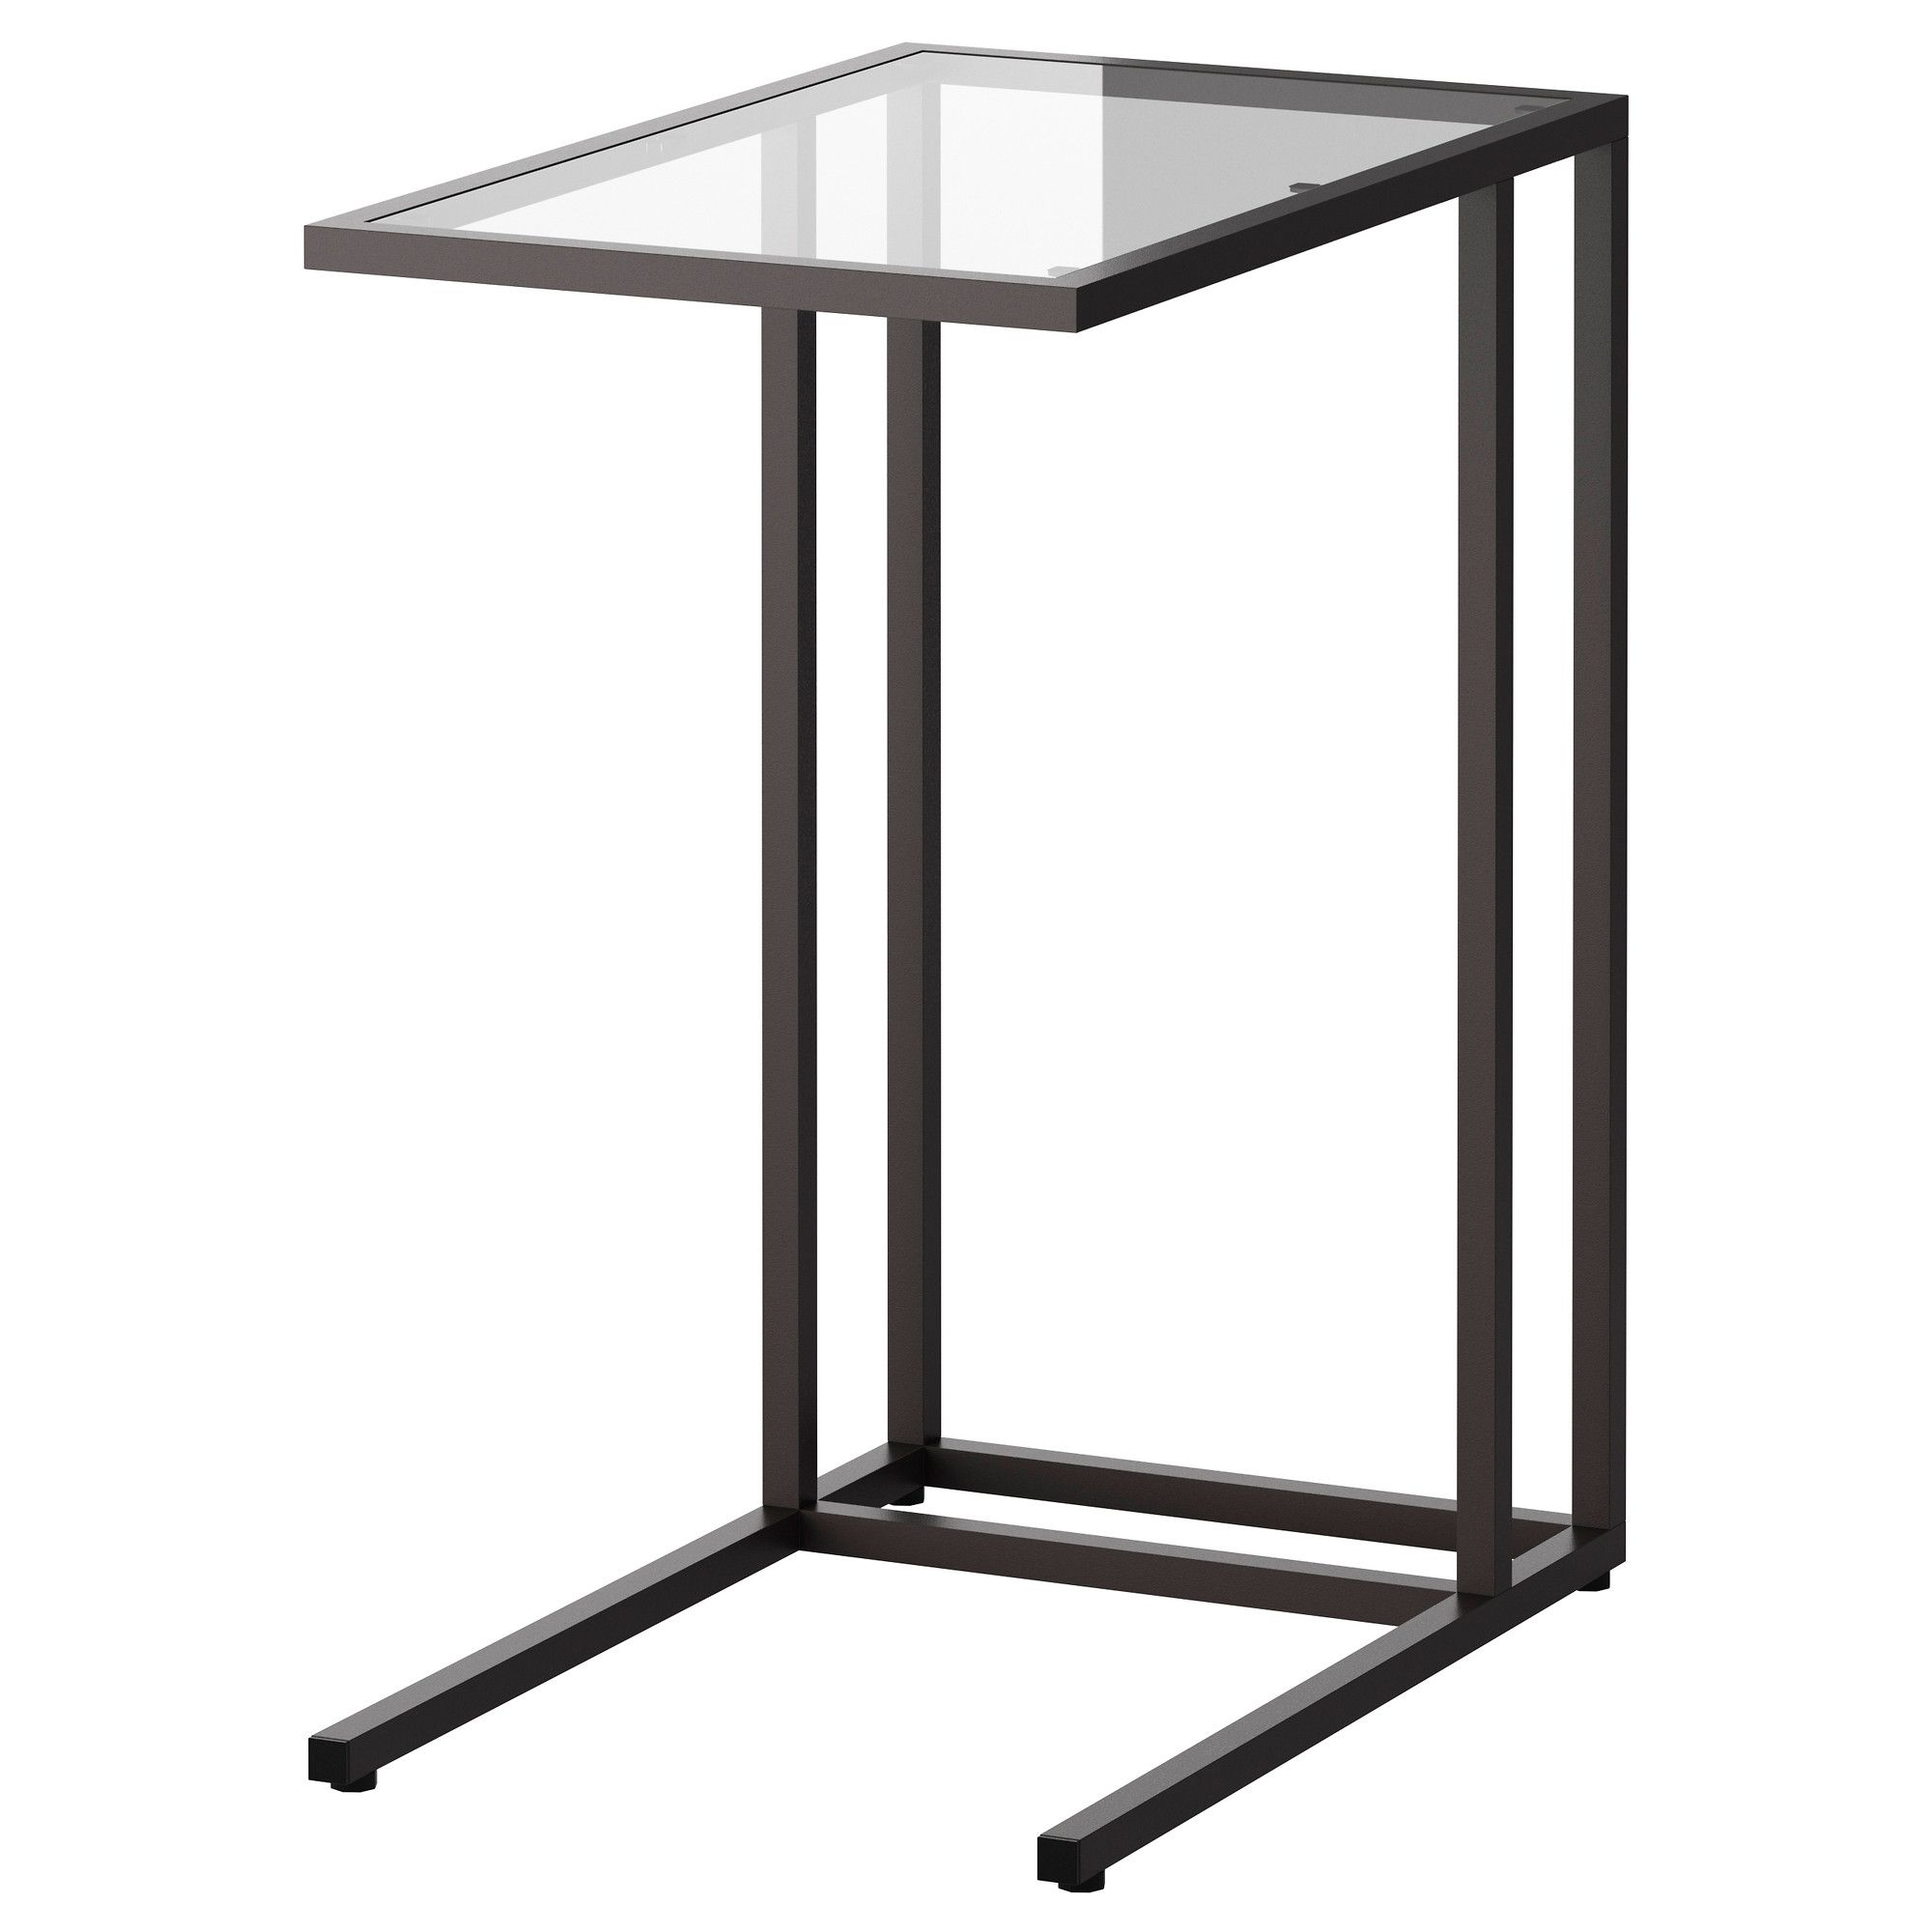 Ikea Küche Side By Side Kühlschrank VittsjÖ Laptop Stand, Black-brown, Glass, 35x65 Cm - Ikea | Laptop Stand Ikea, Ikea, Laptop Stand